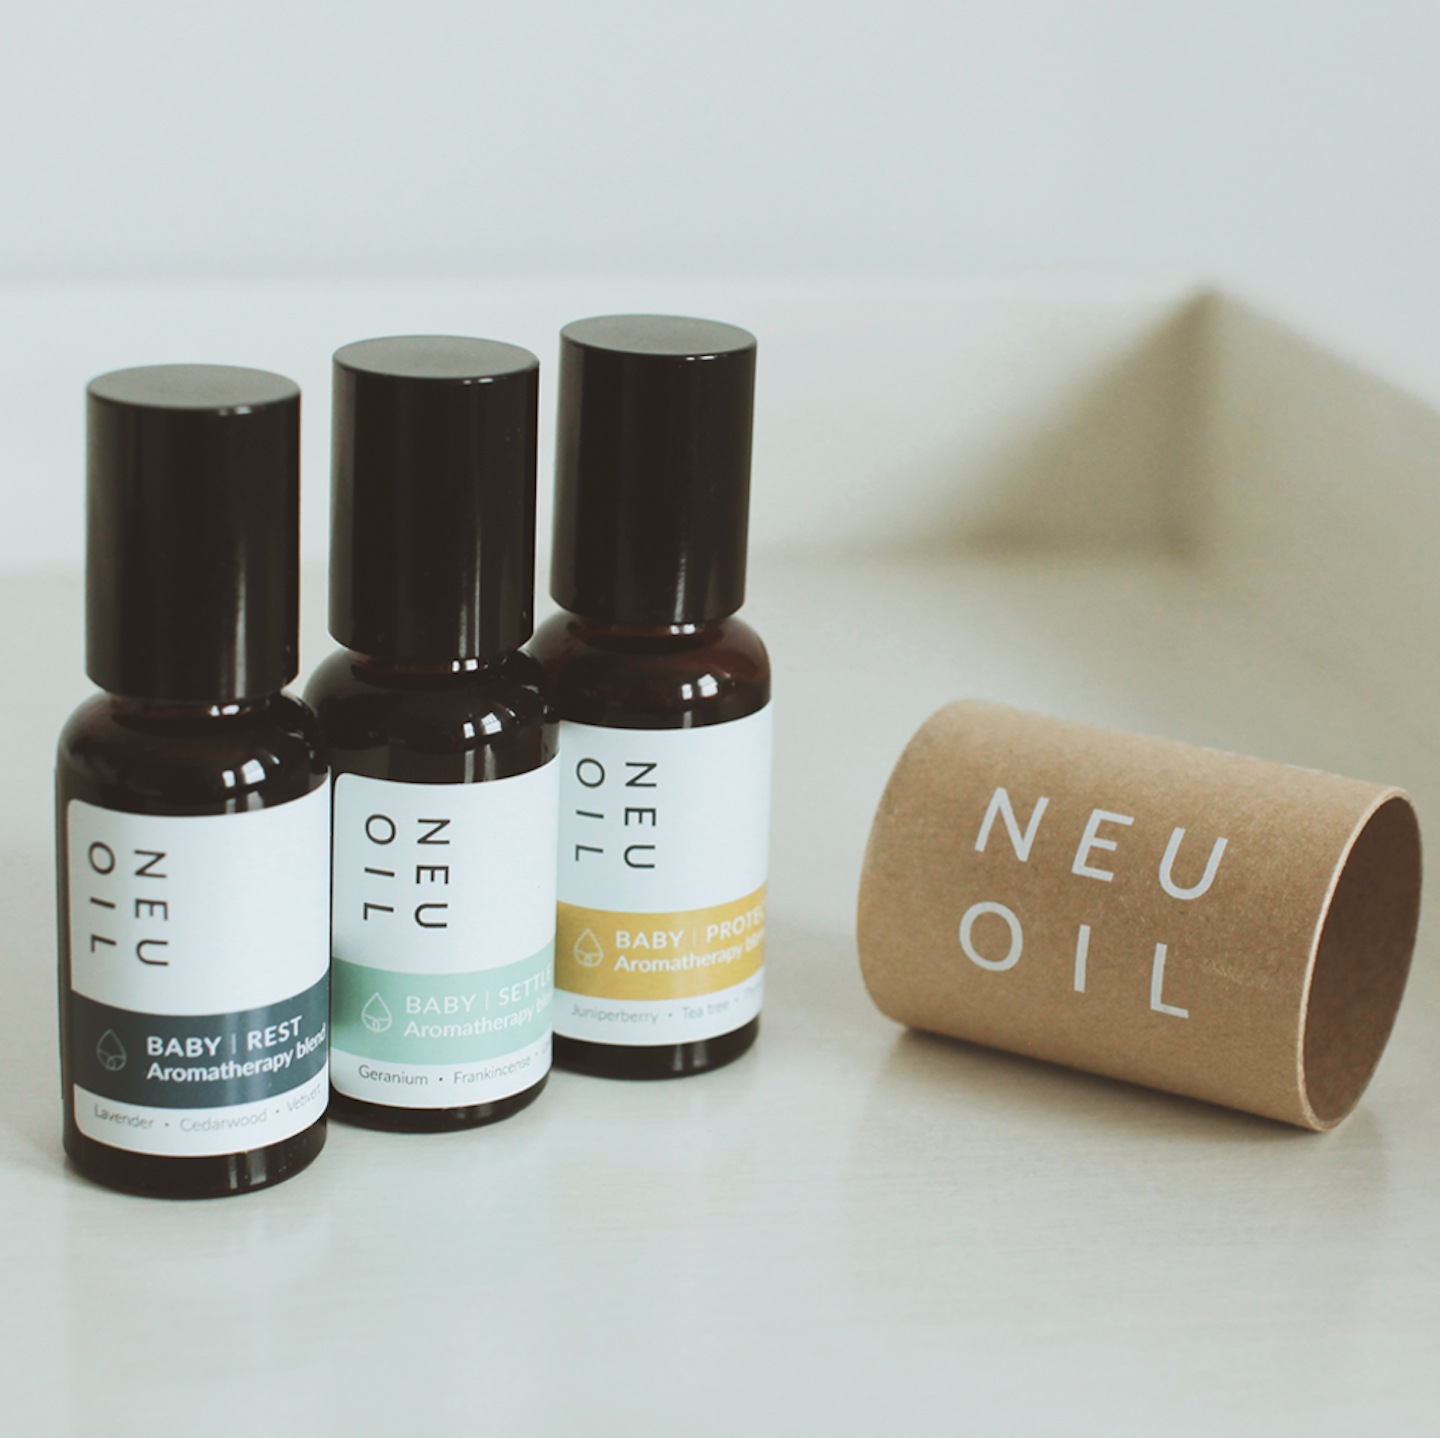 Essential Oils for Baby and You: Neu Oil